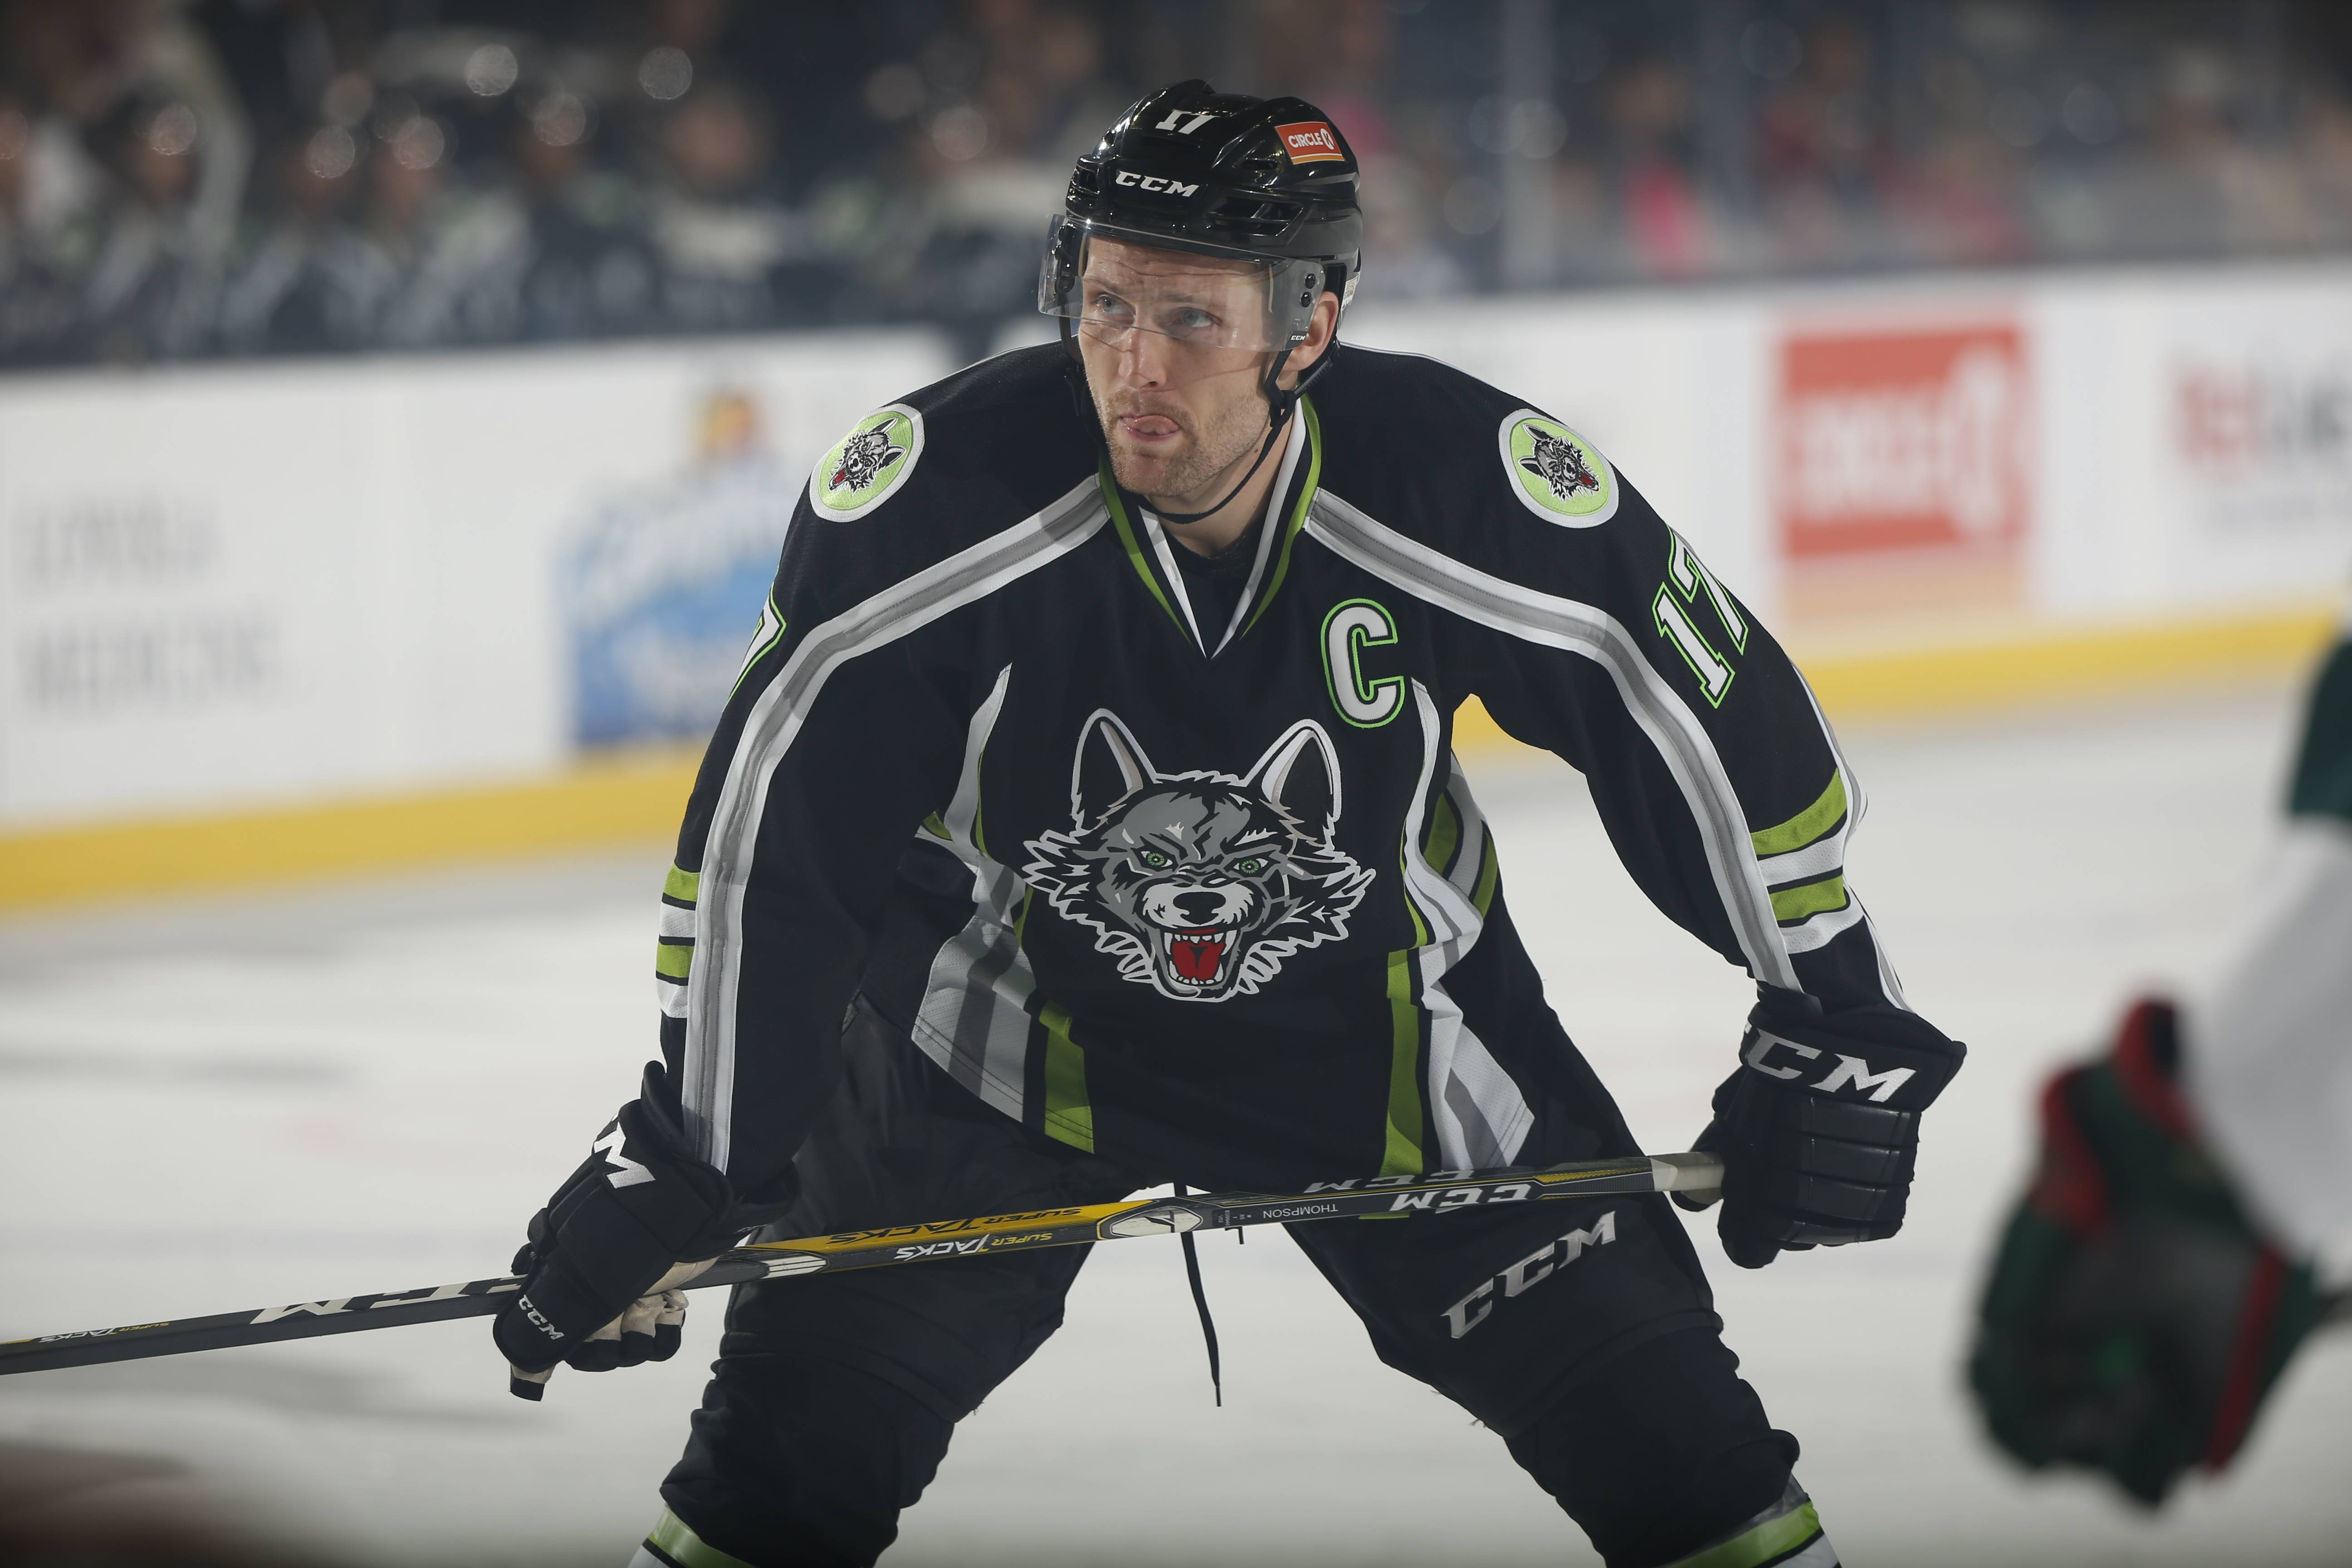 Wolves captain Paul Thompson has helped the Wolves score often in their 14-game point streak.